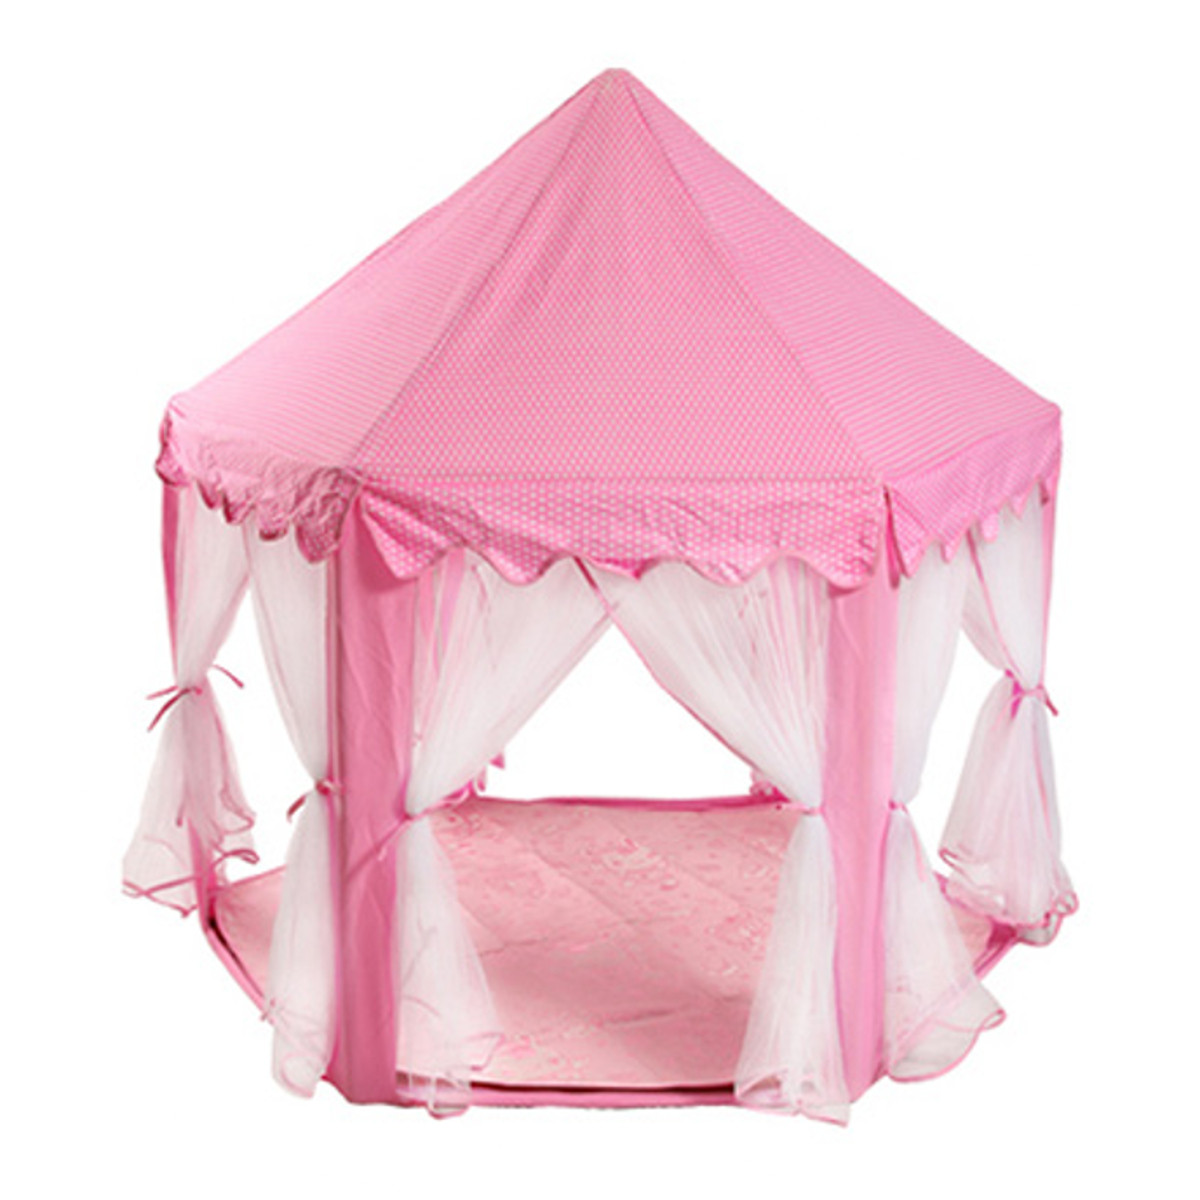 Lovely Girls Pink Princess Castle Cute Playhouse Children Kids Play Tent Outdoor Toys Tent For Children Kids-in Toy Tents from Toys u0026 Hobbies on ...  sc 1 st  AliExpress.com : girls tent - memphite.com